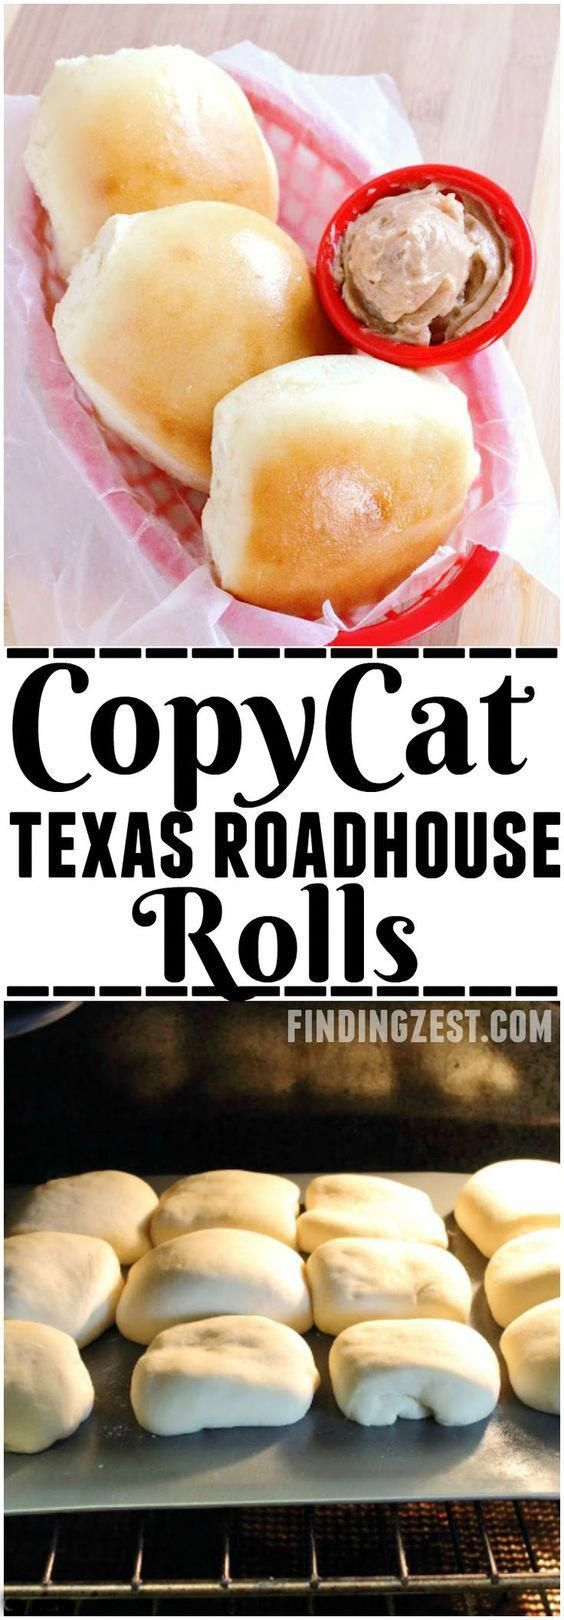 Photo of Copycat Texas Roadhouse Rolls and Cinnamon Butter Recipe